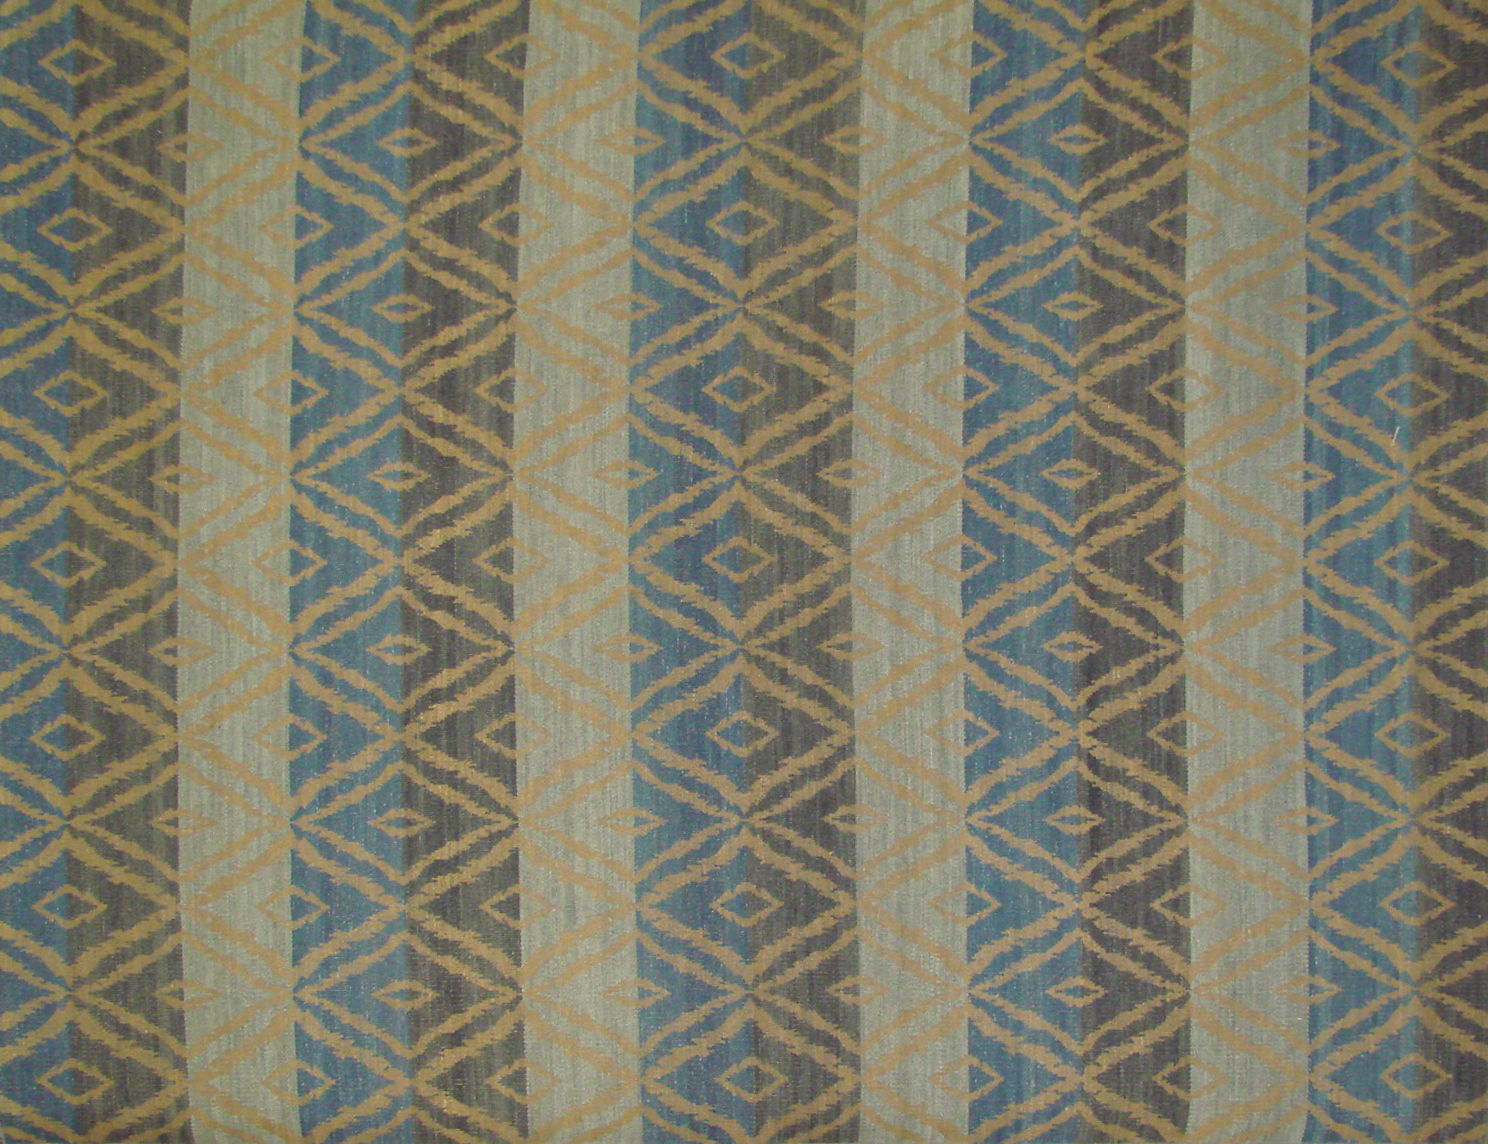 8x10 Flat Weave Hand Knotted Wool Area Rug - MR21301